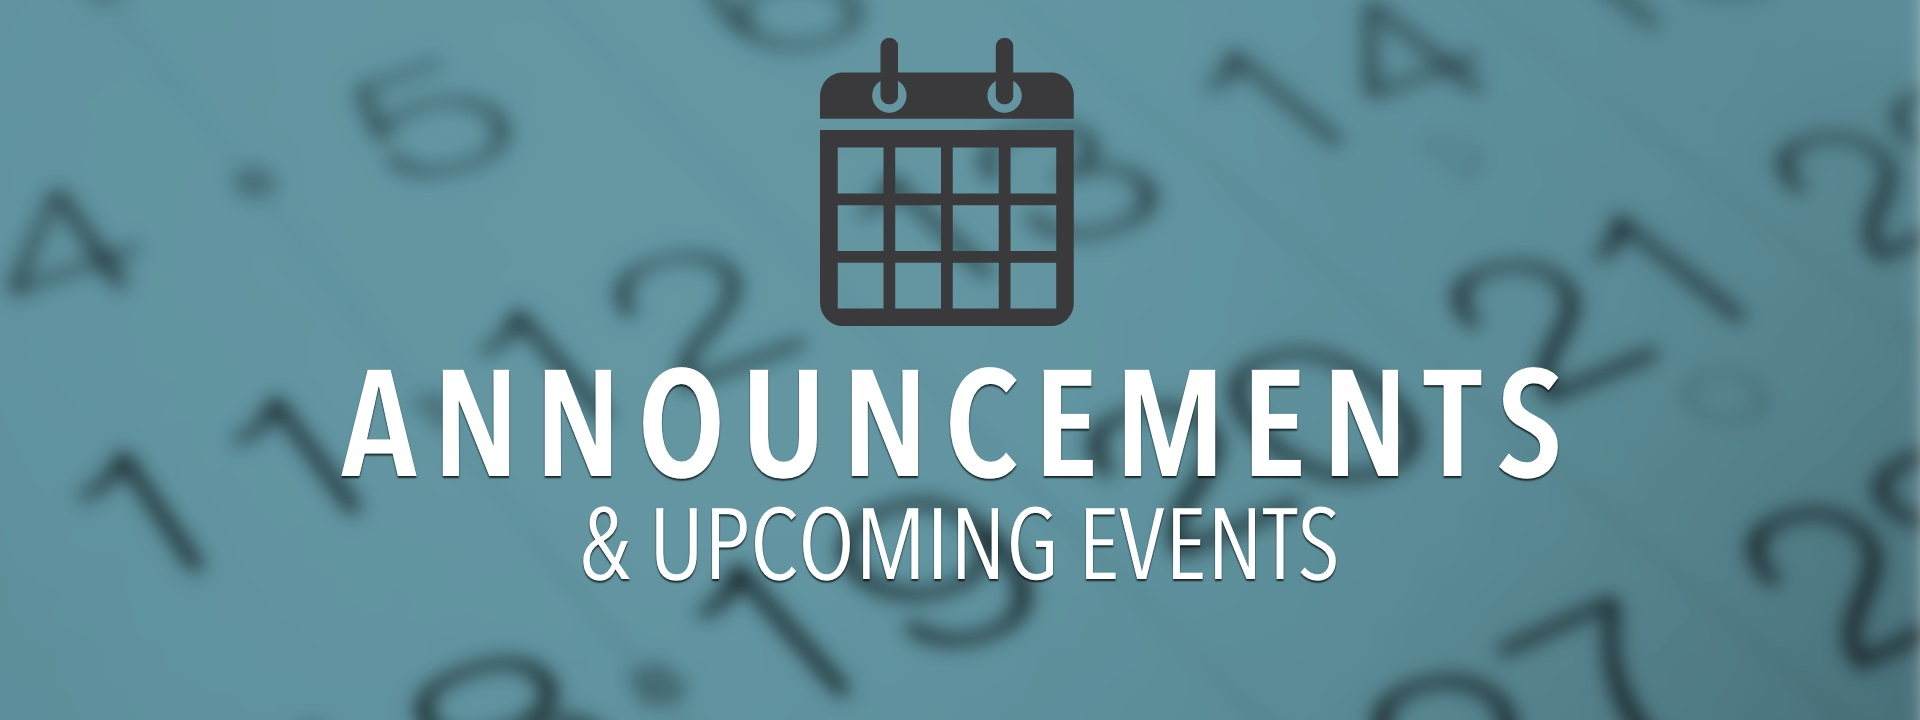 ANNOUNCEMENTS | Free Reformed Church of Oxford County